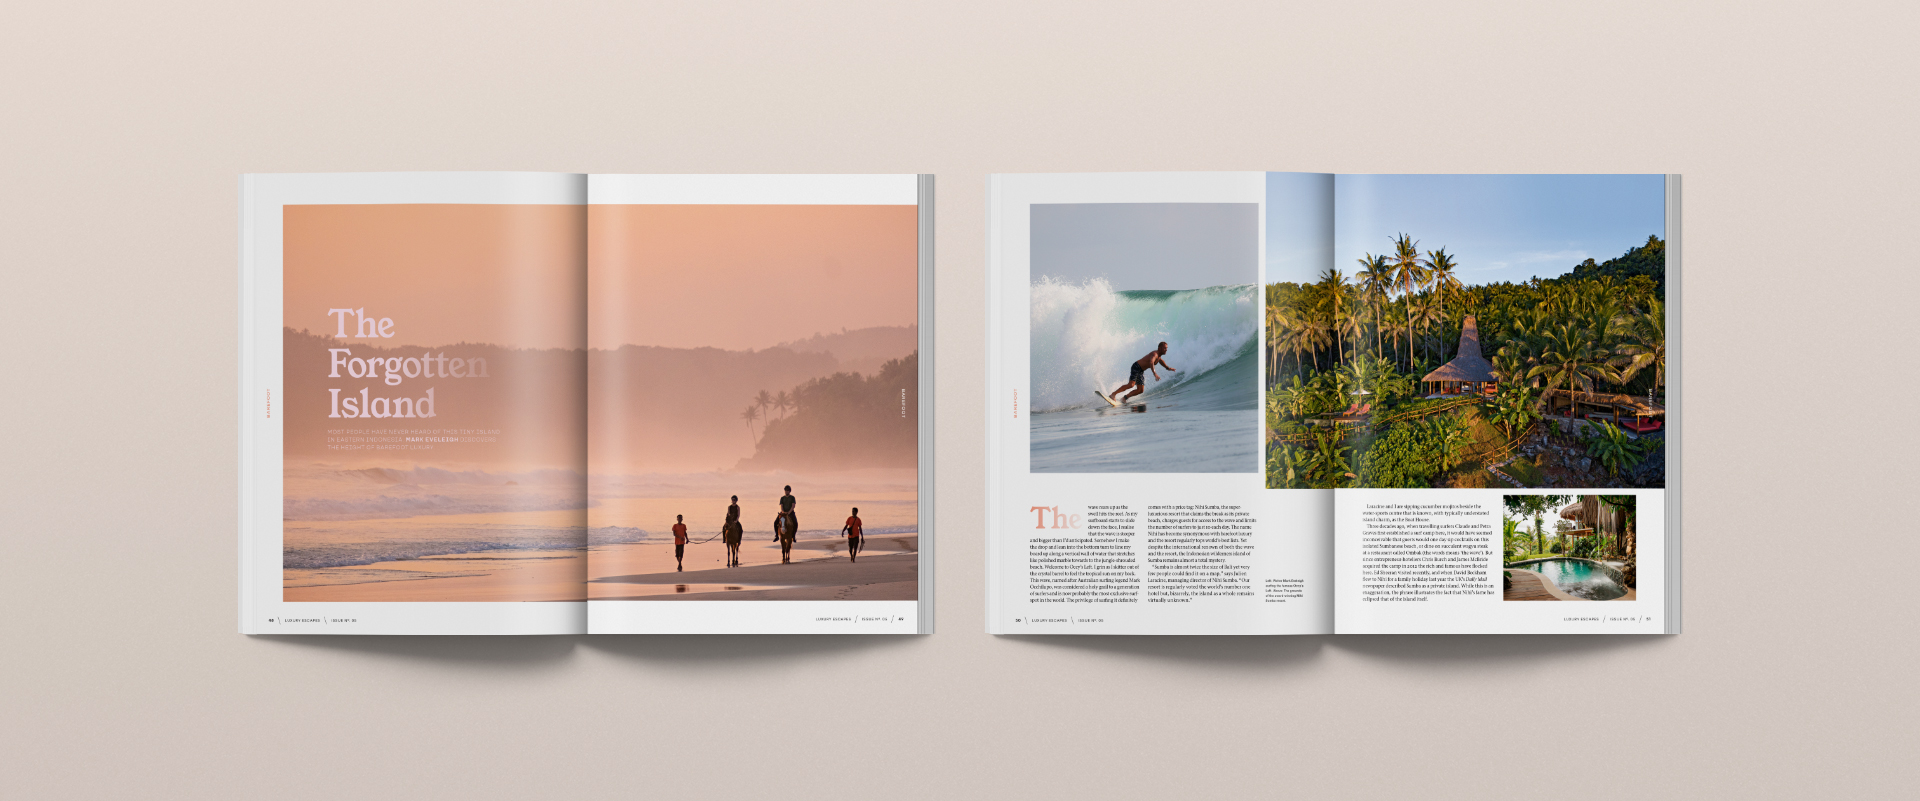 Luxury Escapes Travel Print Magazine spreads